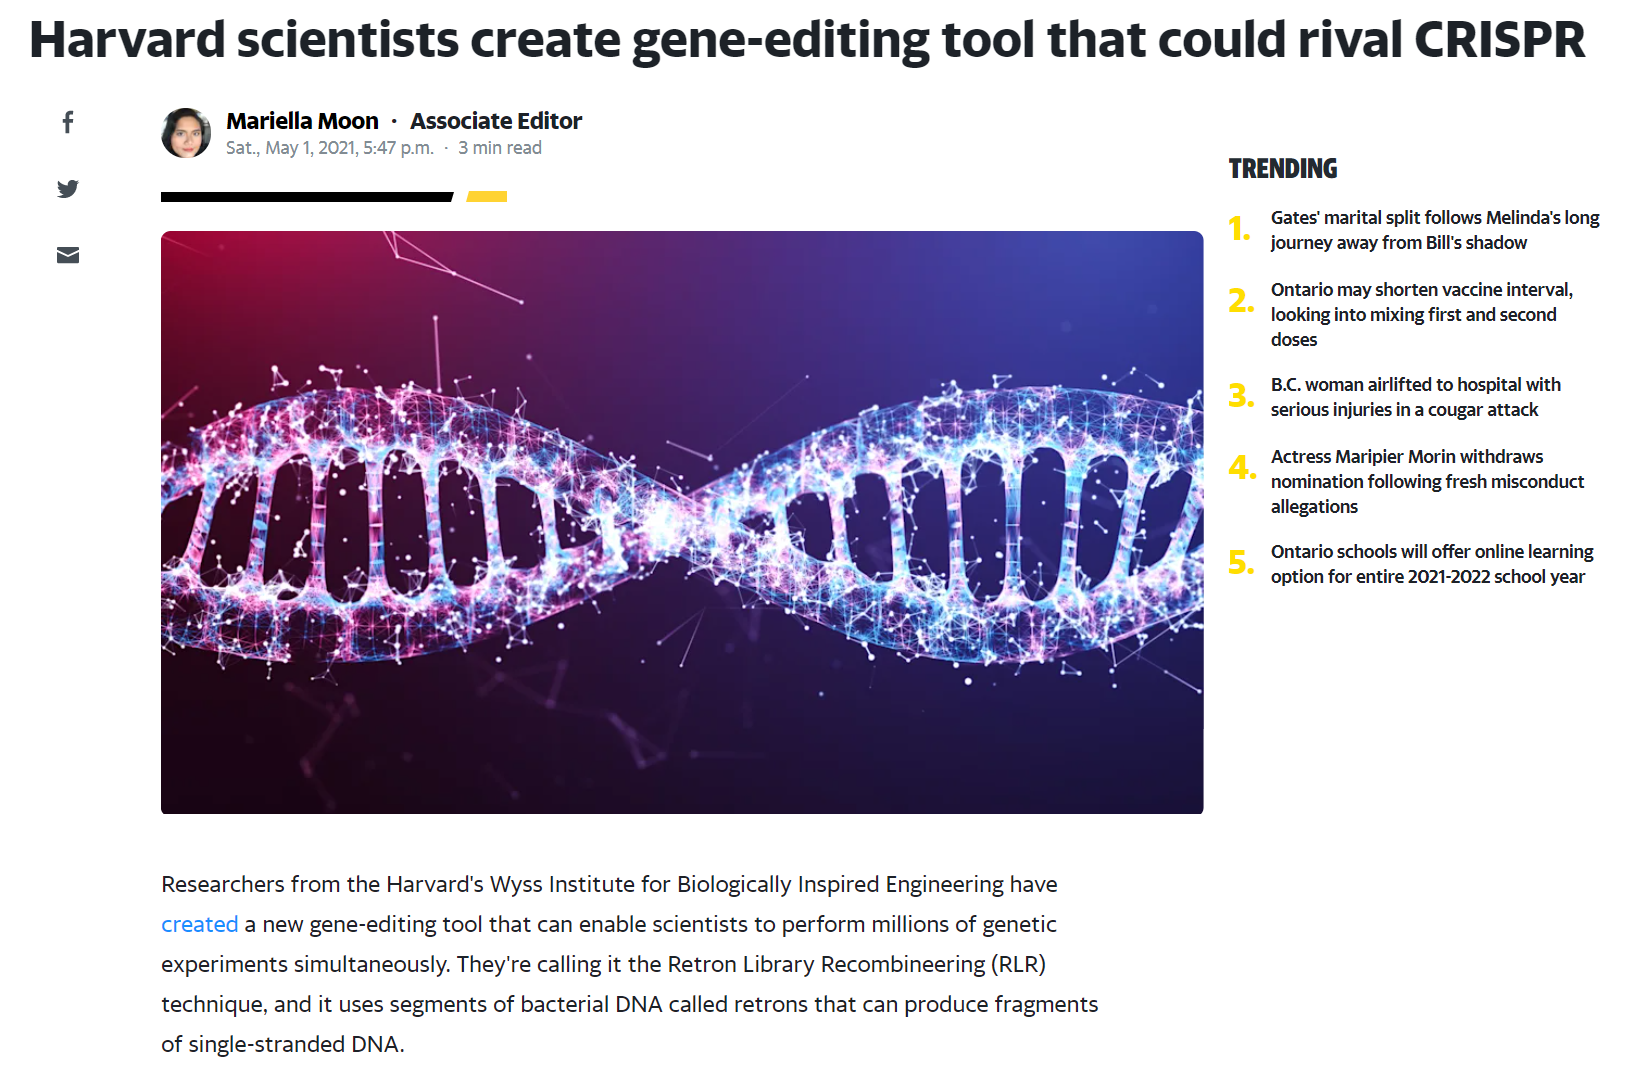 FireShot Pro Webpage Screenshot #167 - 'Harvard scientists create gene-editing tool that could rival CRISPR' - ca_news_yahoo_com (2).png